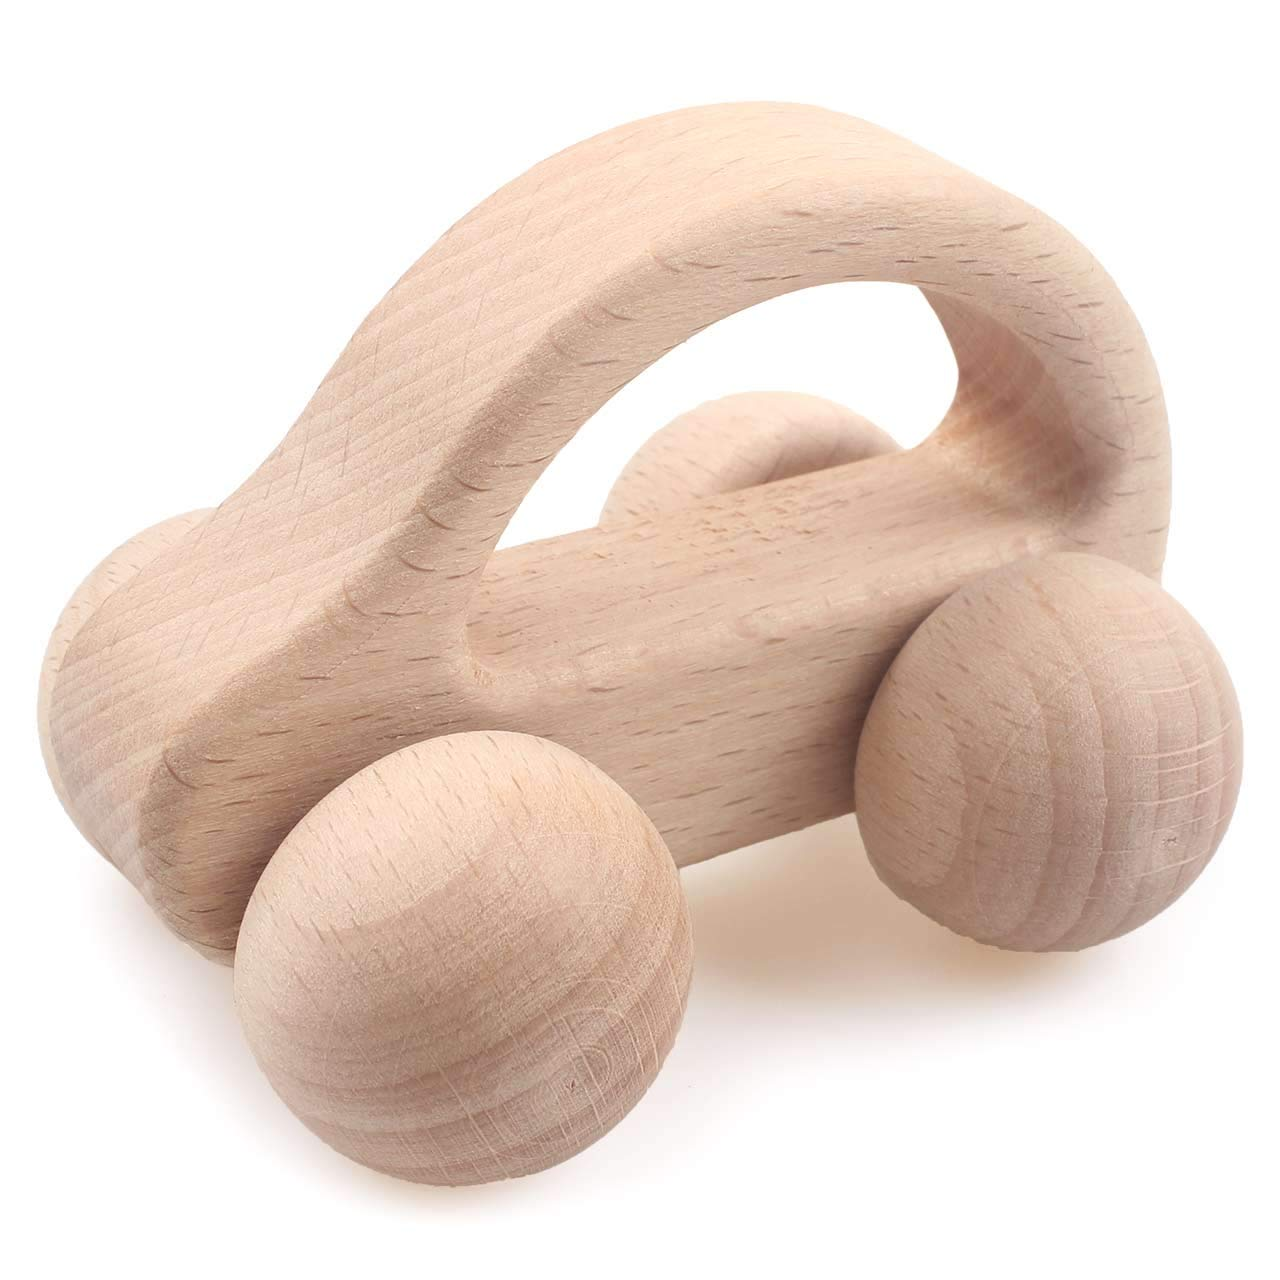 1PCS Wooden Car  Baby Toys Beech Wooden Blocks Cartoon Educational Toys For Children Teething Baby Teethers